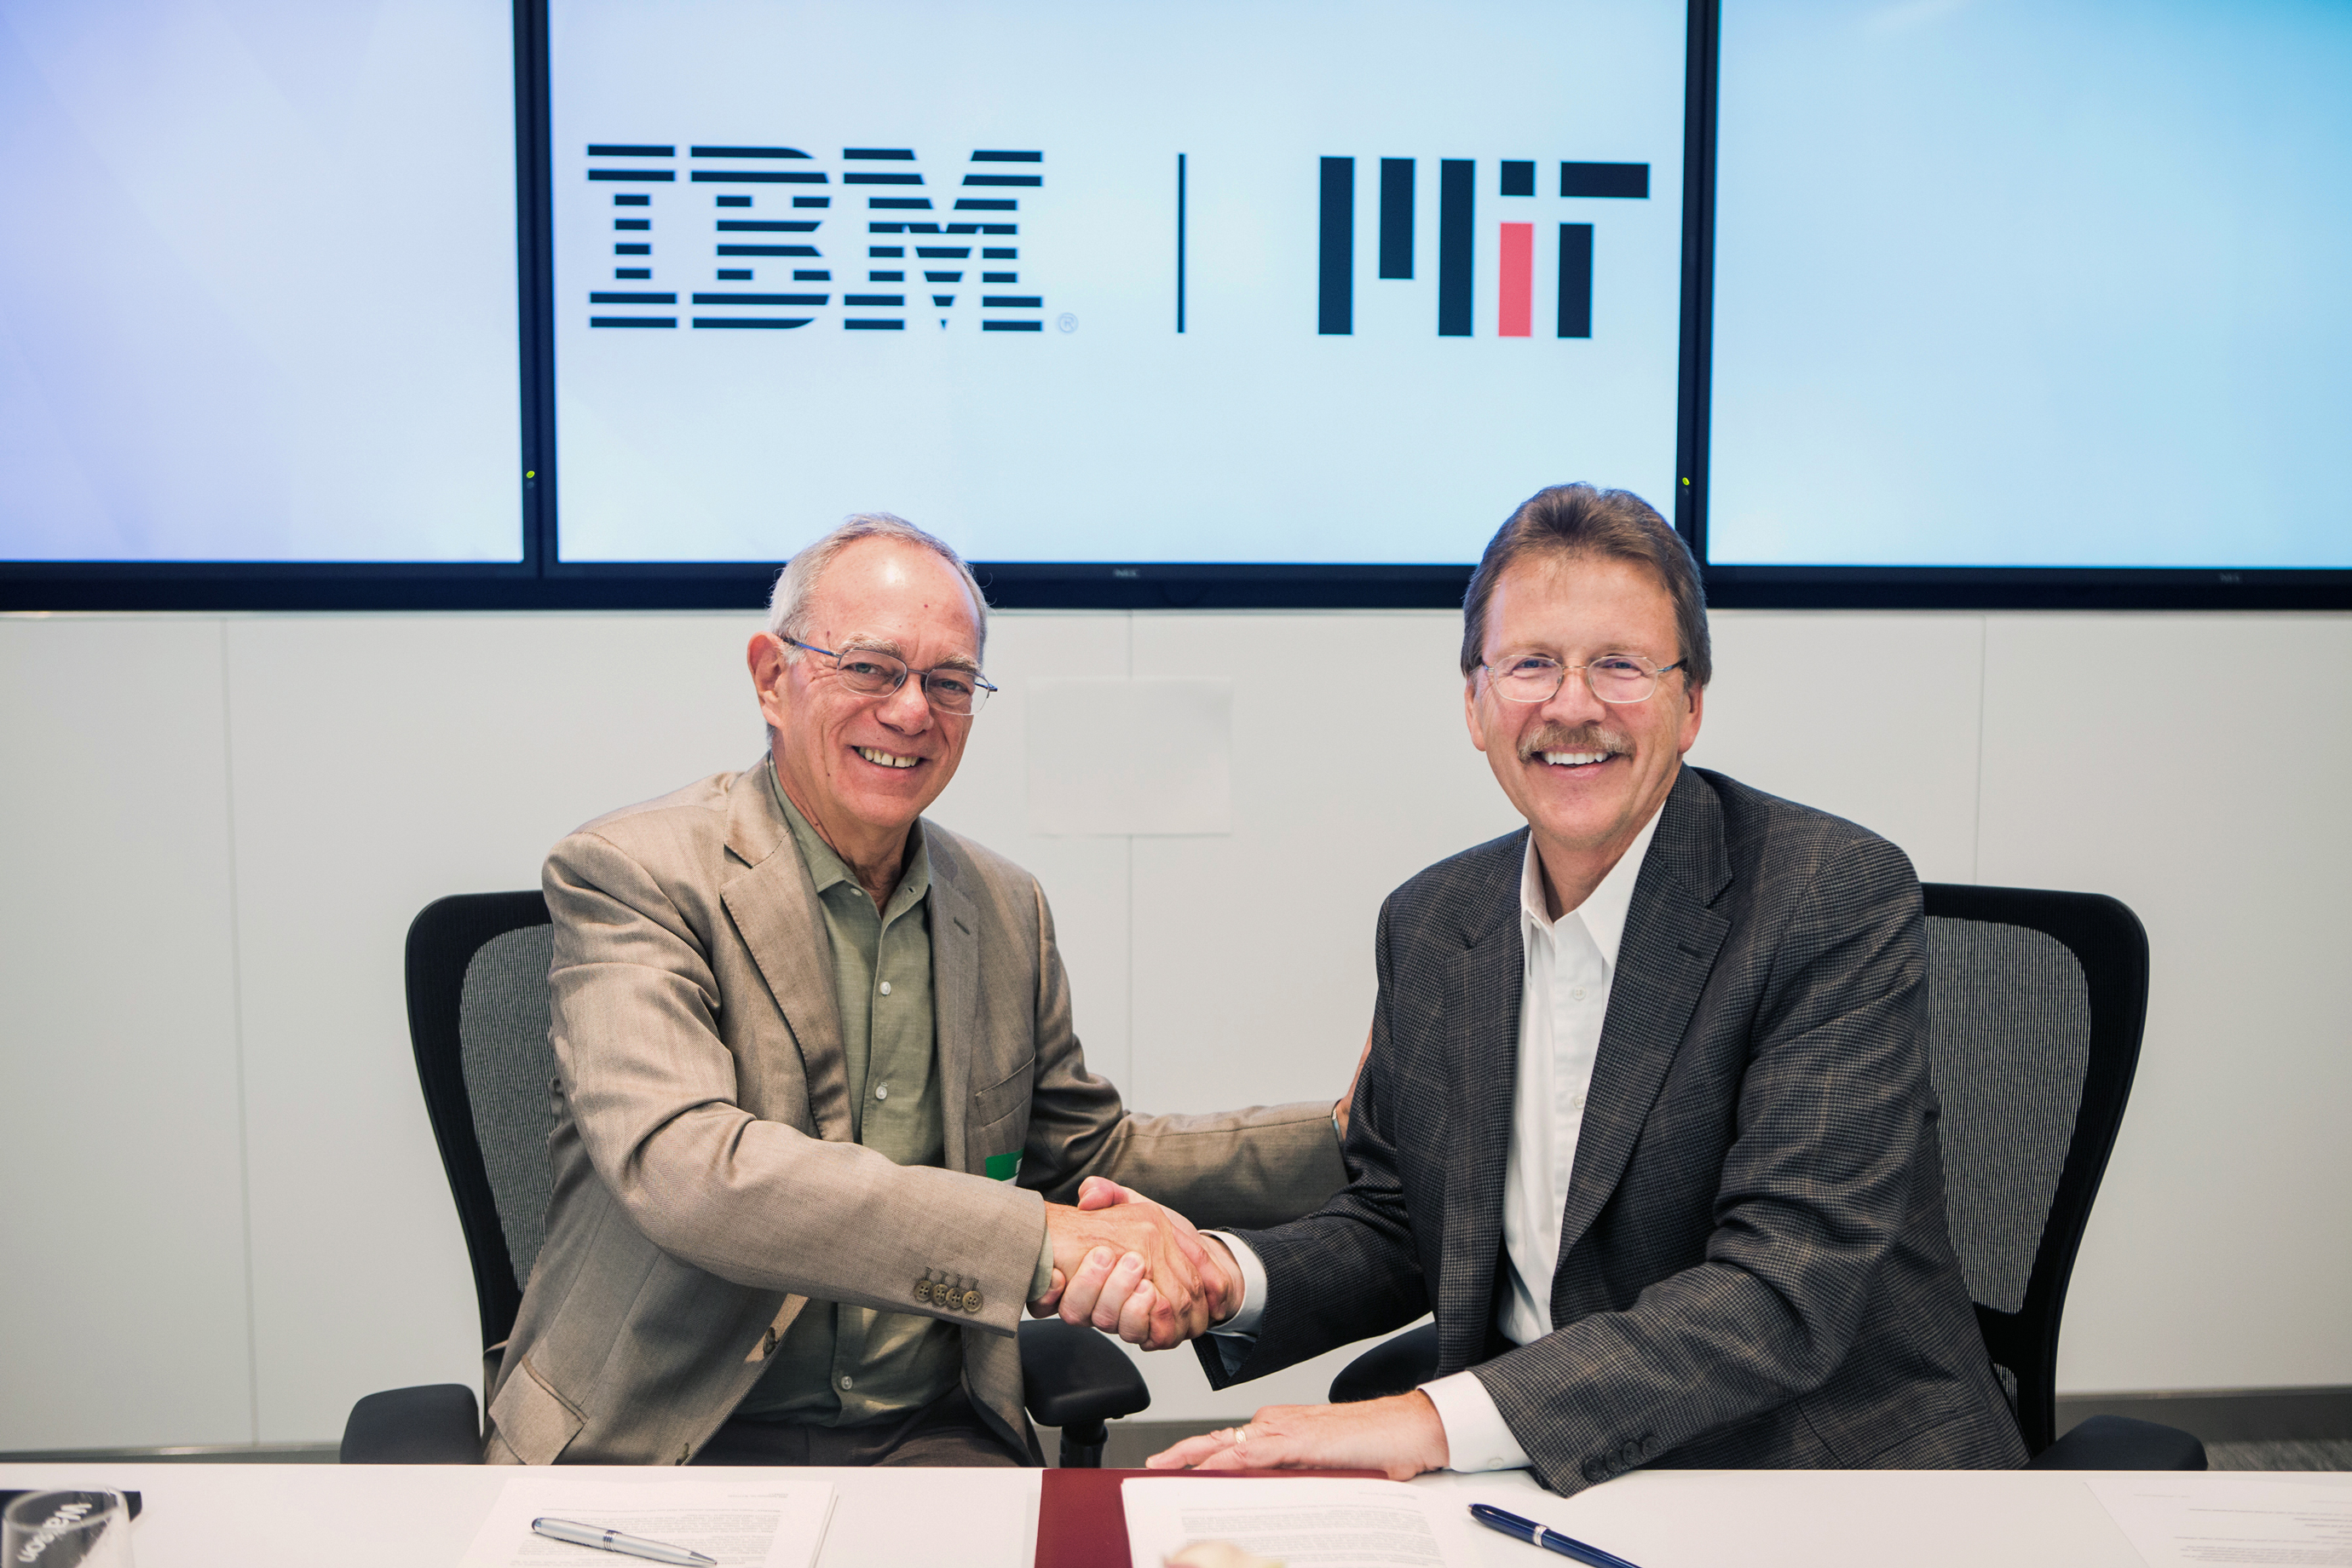 IBM, MIT to Establish AI Research Laboratory